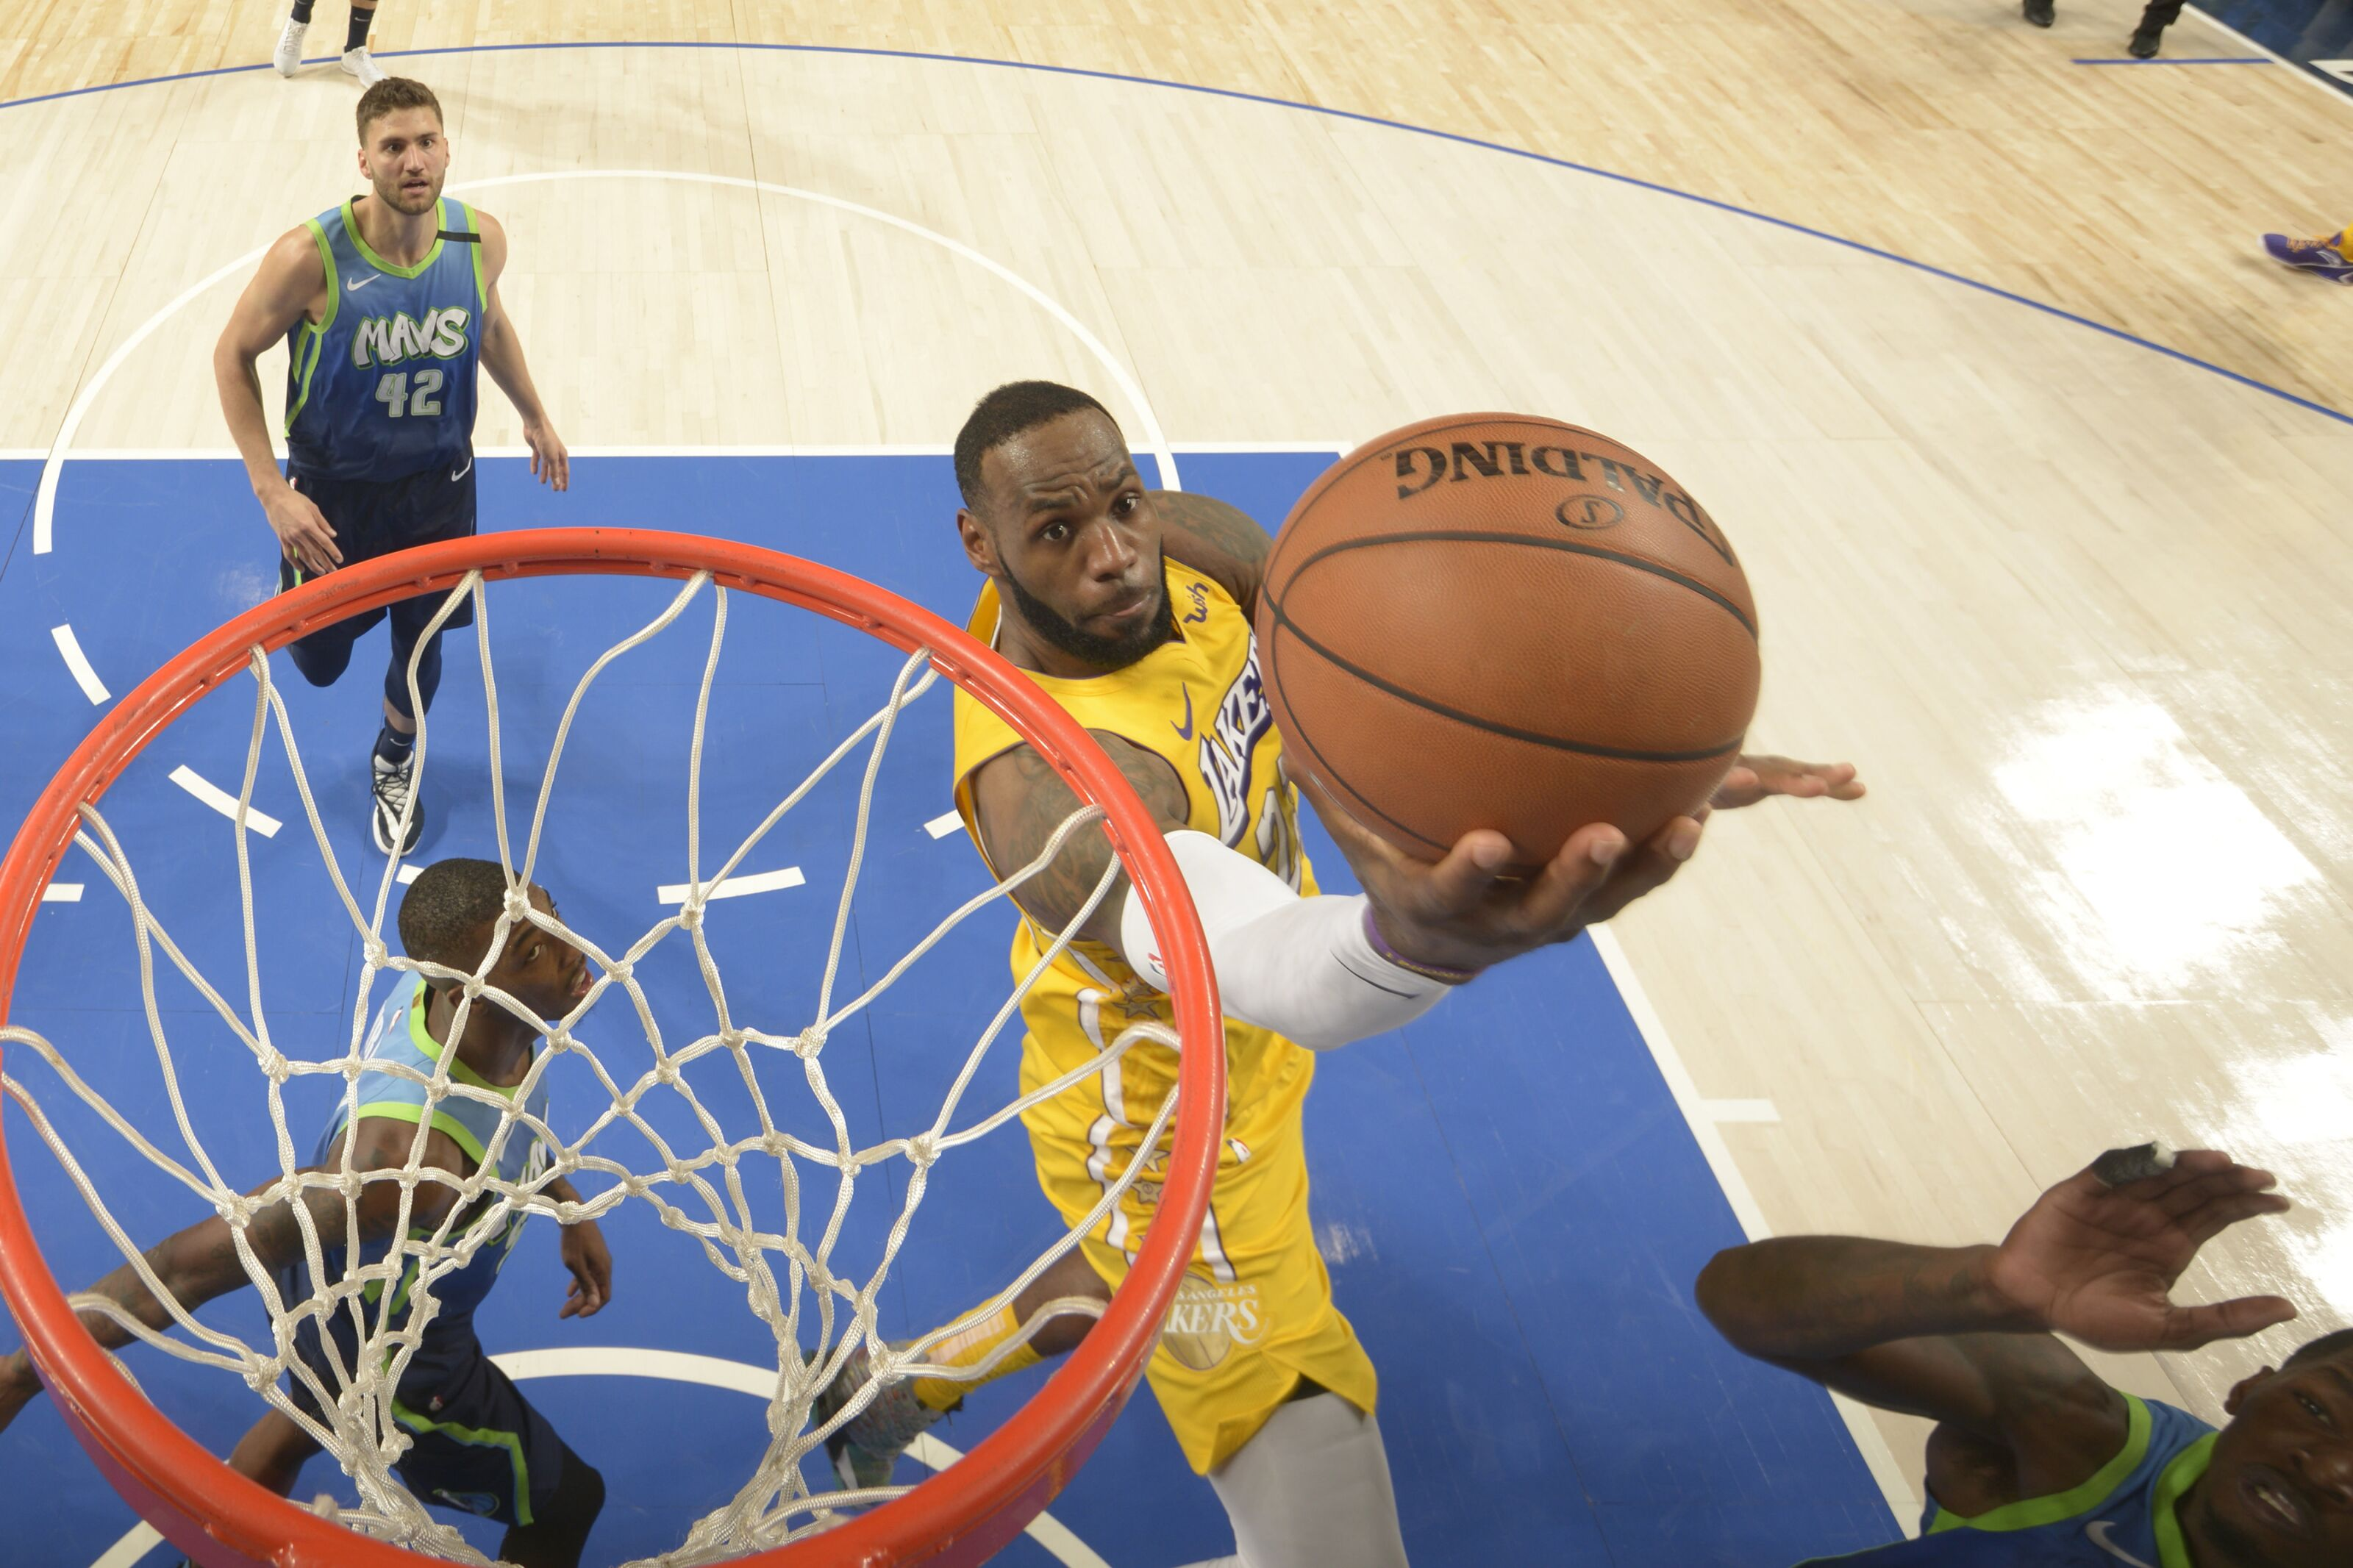 Los Angeles Lakers: 3 Lessons from the win over the Dallas Mavericks